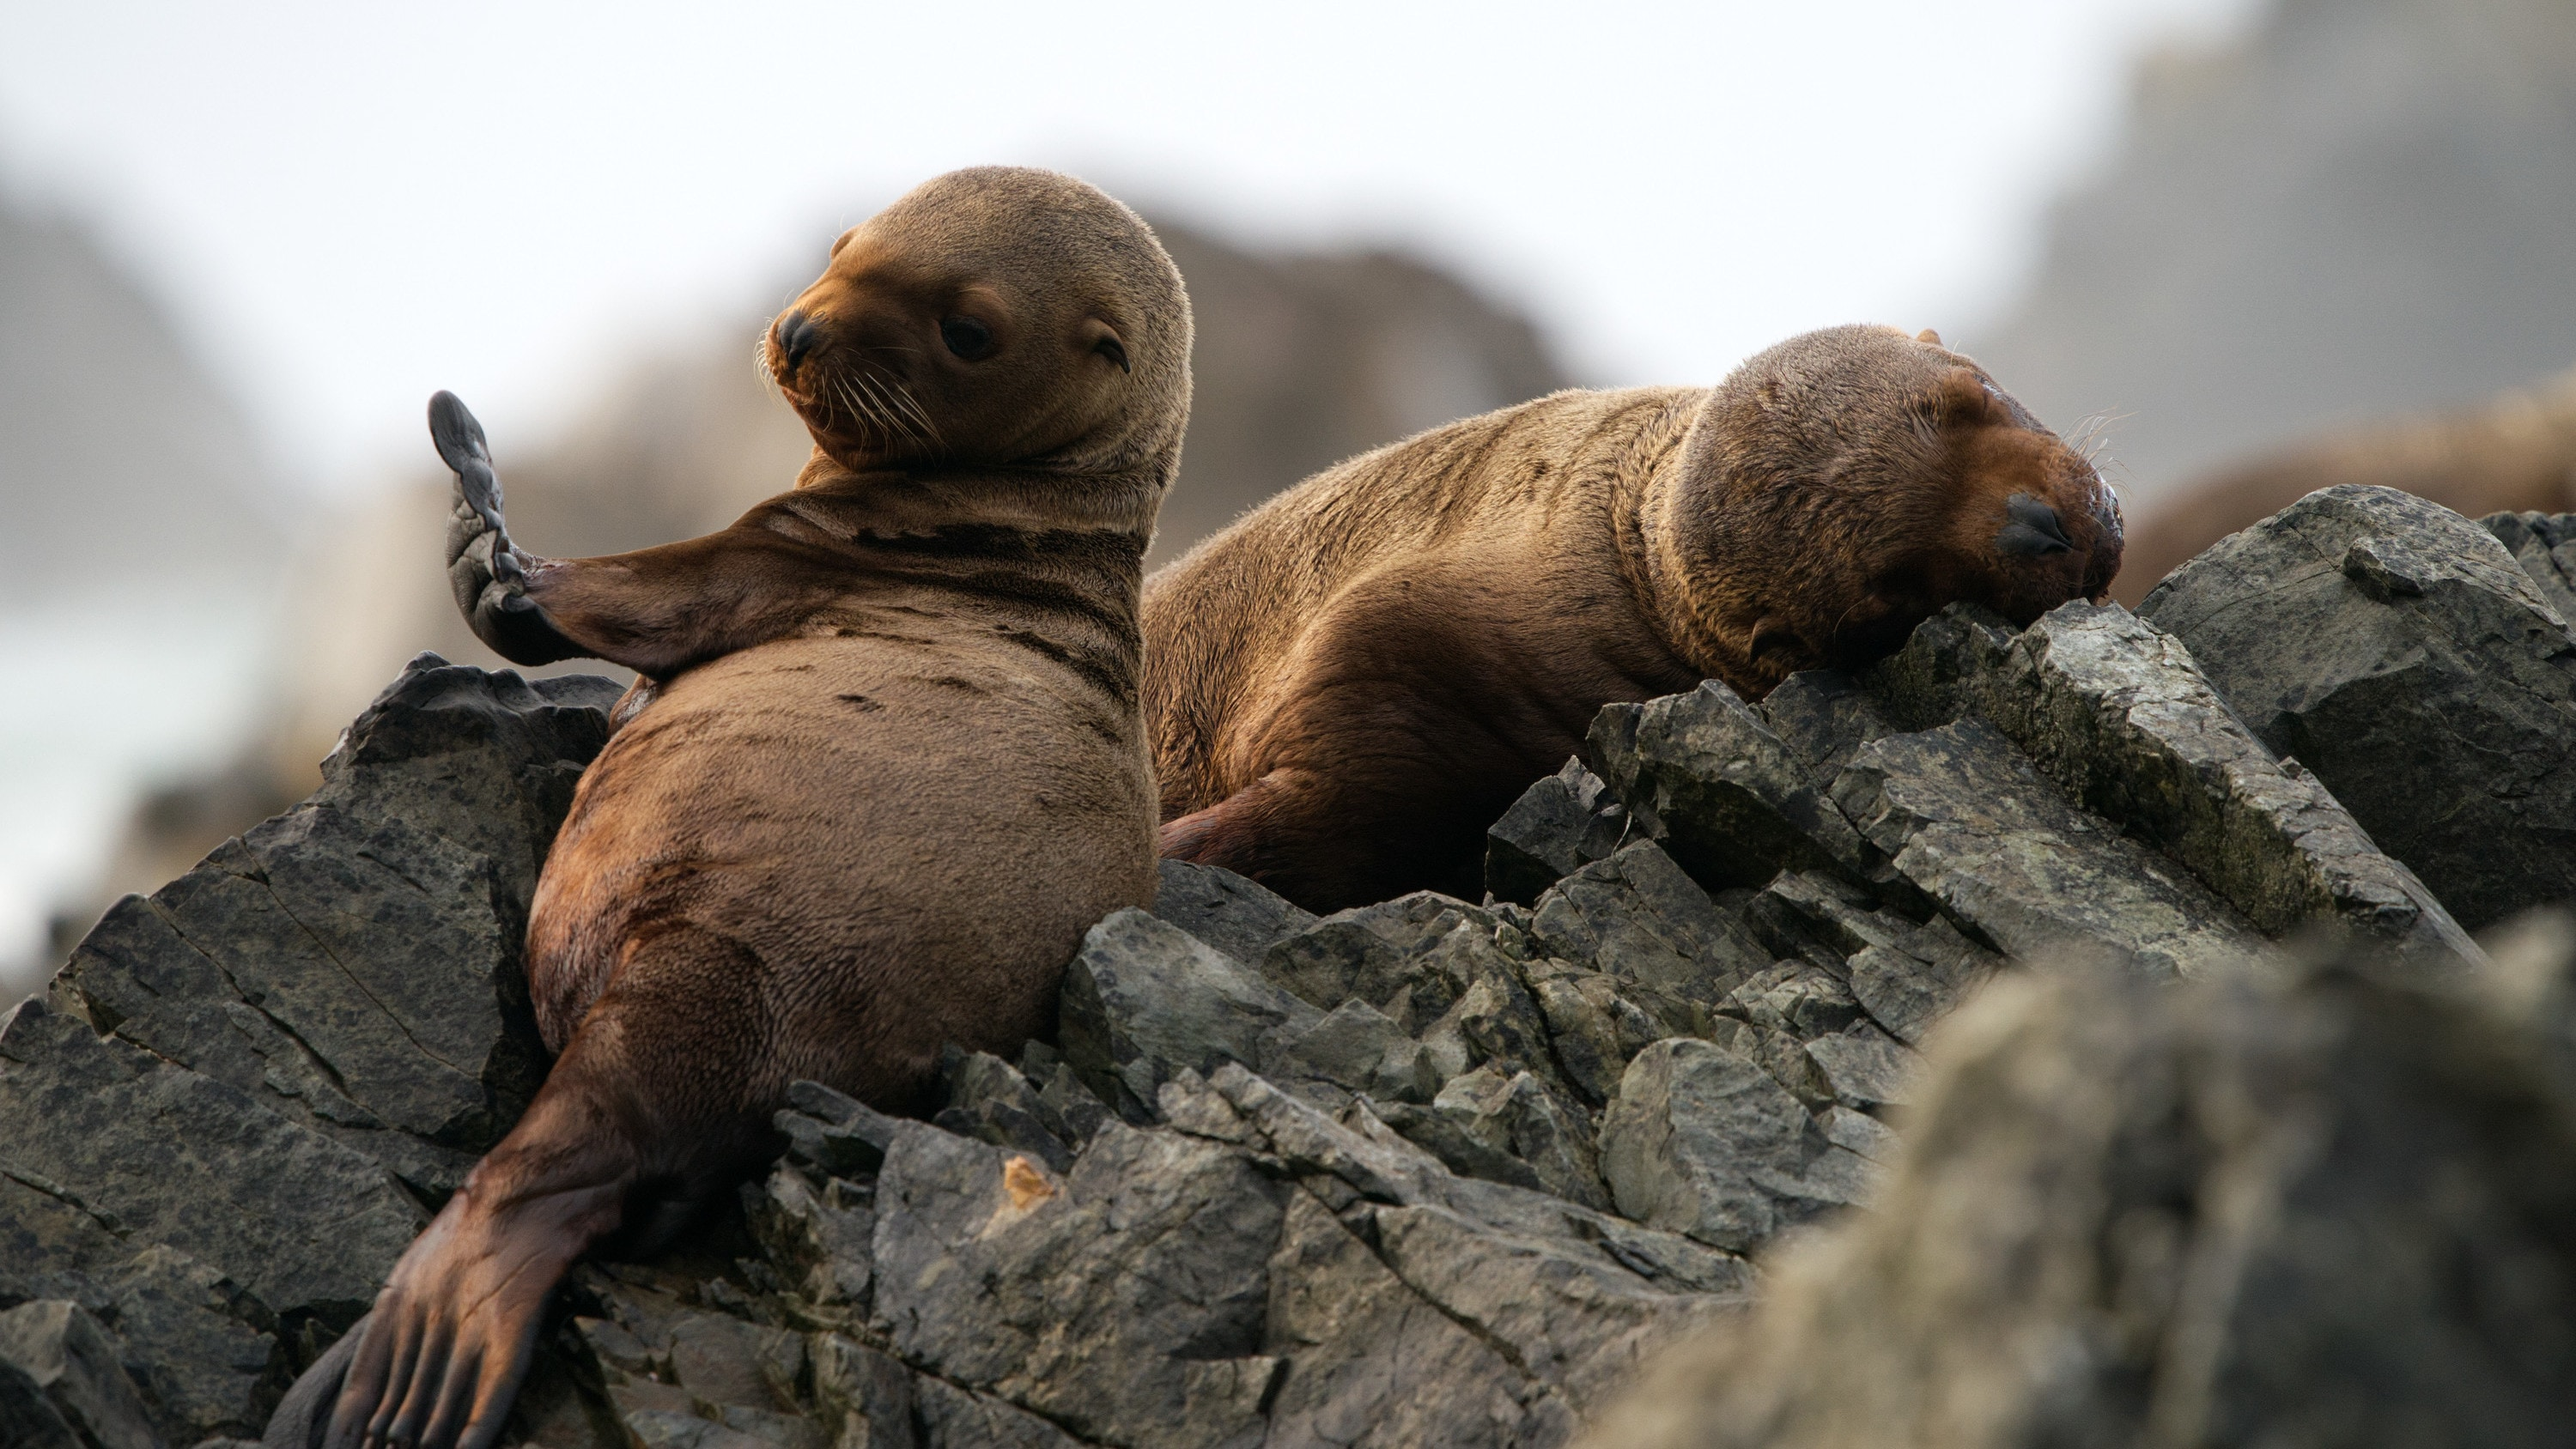 Luna looks at her flipper while another pup sleeps on the rocks. (National Geographic for Disney+/Ryan Tidman)